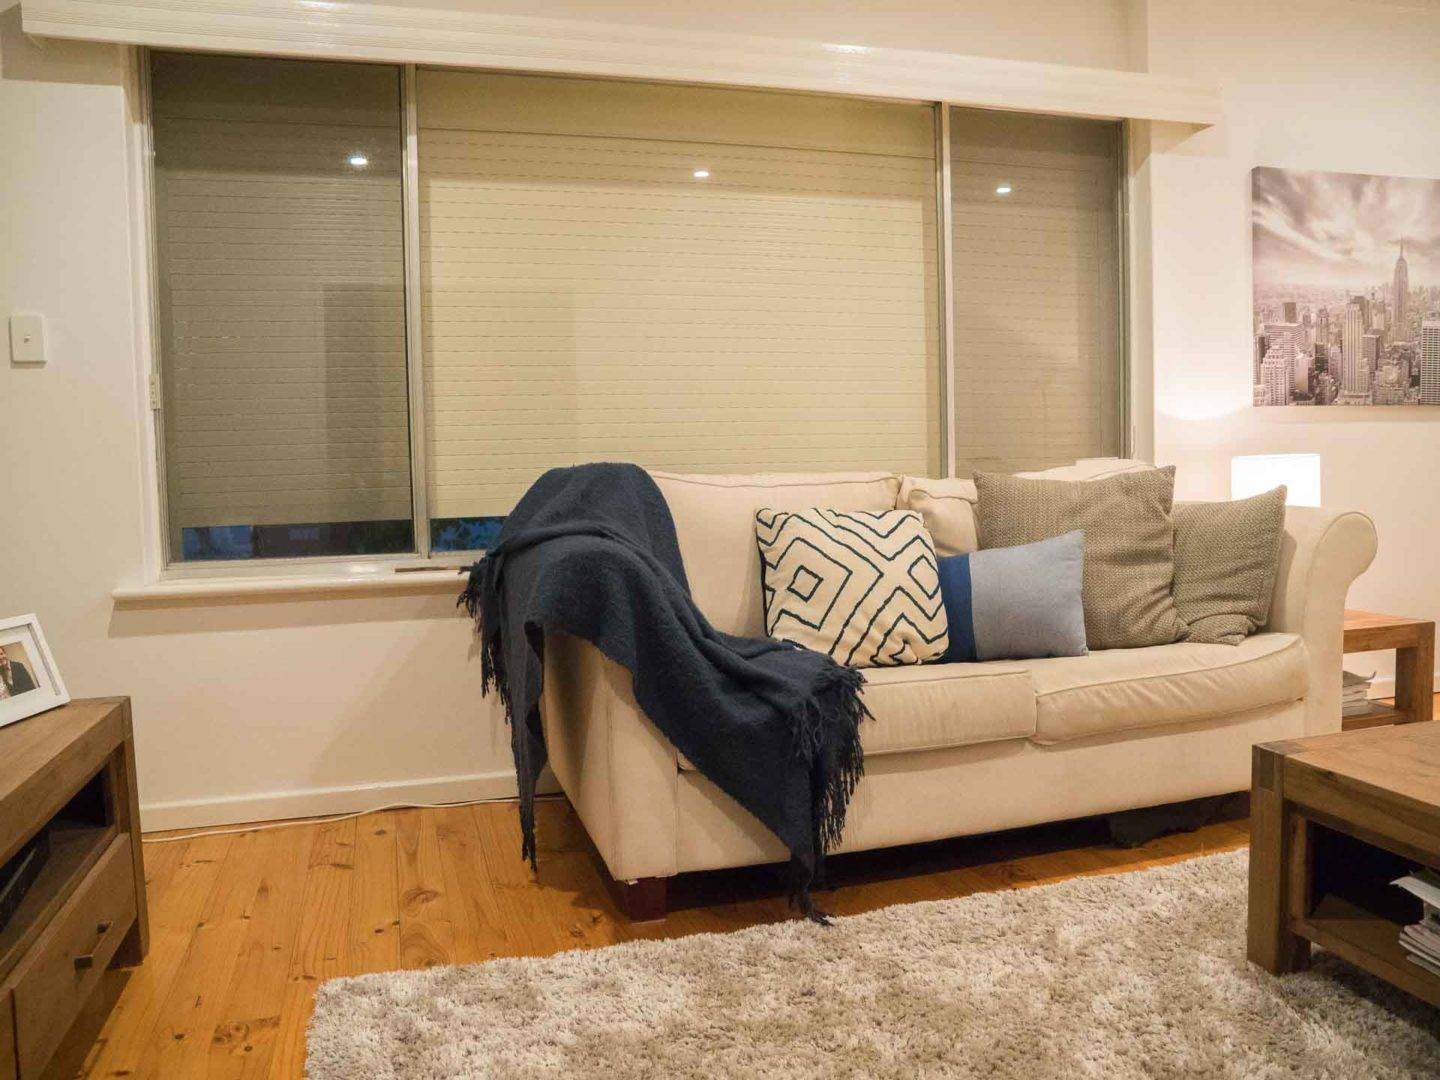 Follow these simple tips to keep your roller shutters in perfect working order - Use them, Australian Outdoor Living.